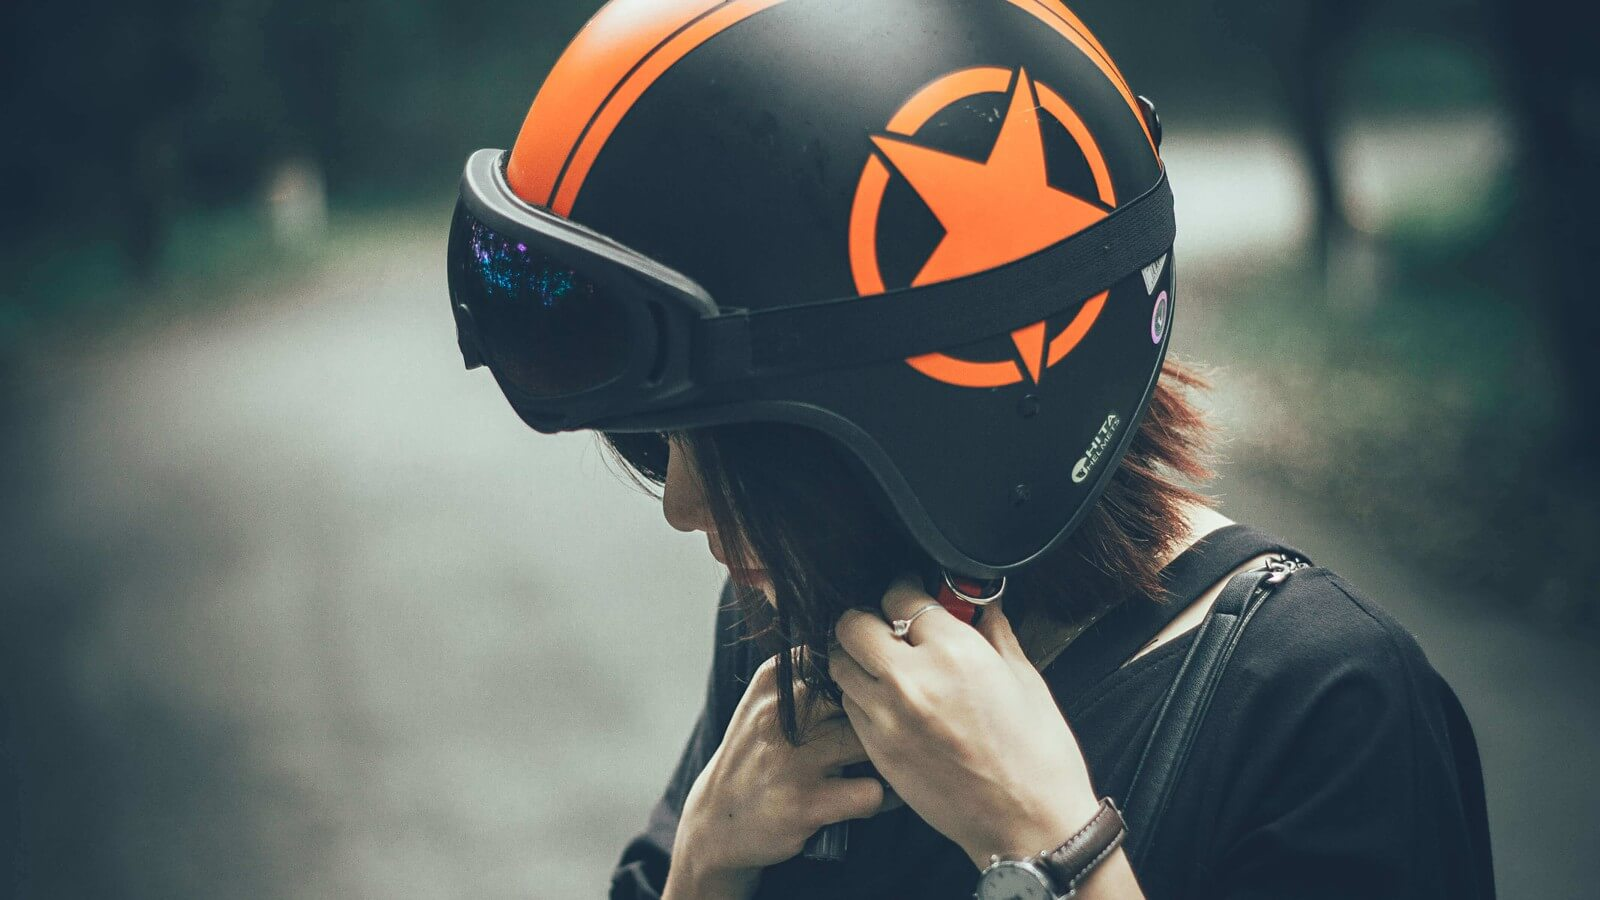 Safety Guidelines in Motorcycle Helmets